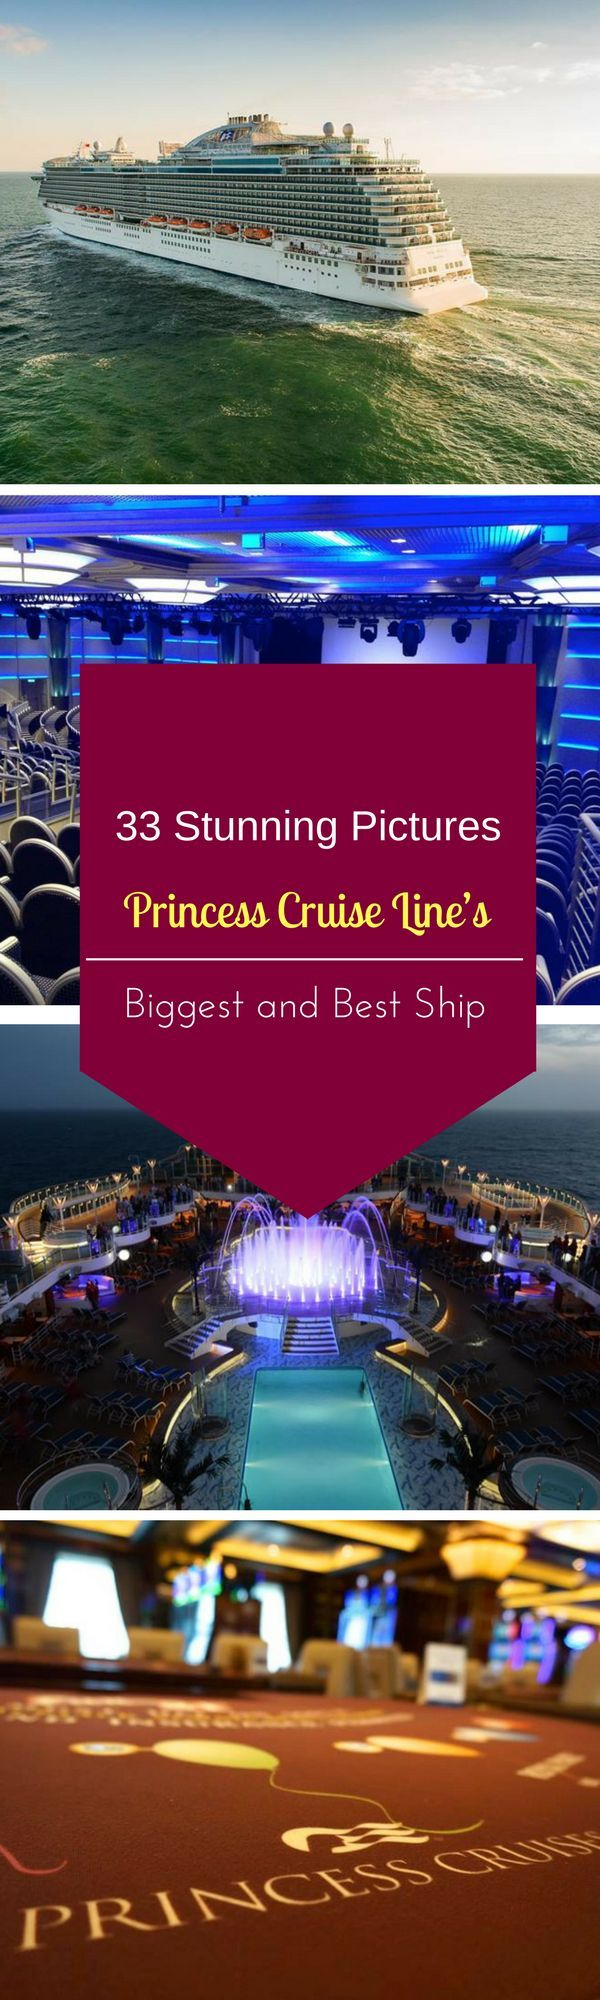 See 33 pictures of Princess's biggest and best cruise ship, the Royal Princess. #travel #traveling #travelphotography #traveller #travelblogger #backpack #backpacking #hiking #adventure #place #visiting #outdoor #beach #beachlife #resort #cruise #hotel #world #worldwide #worldtravel #beautifulplaces #travelpics #Picoftheday #destination